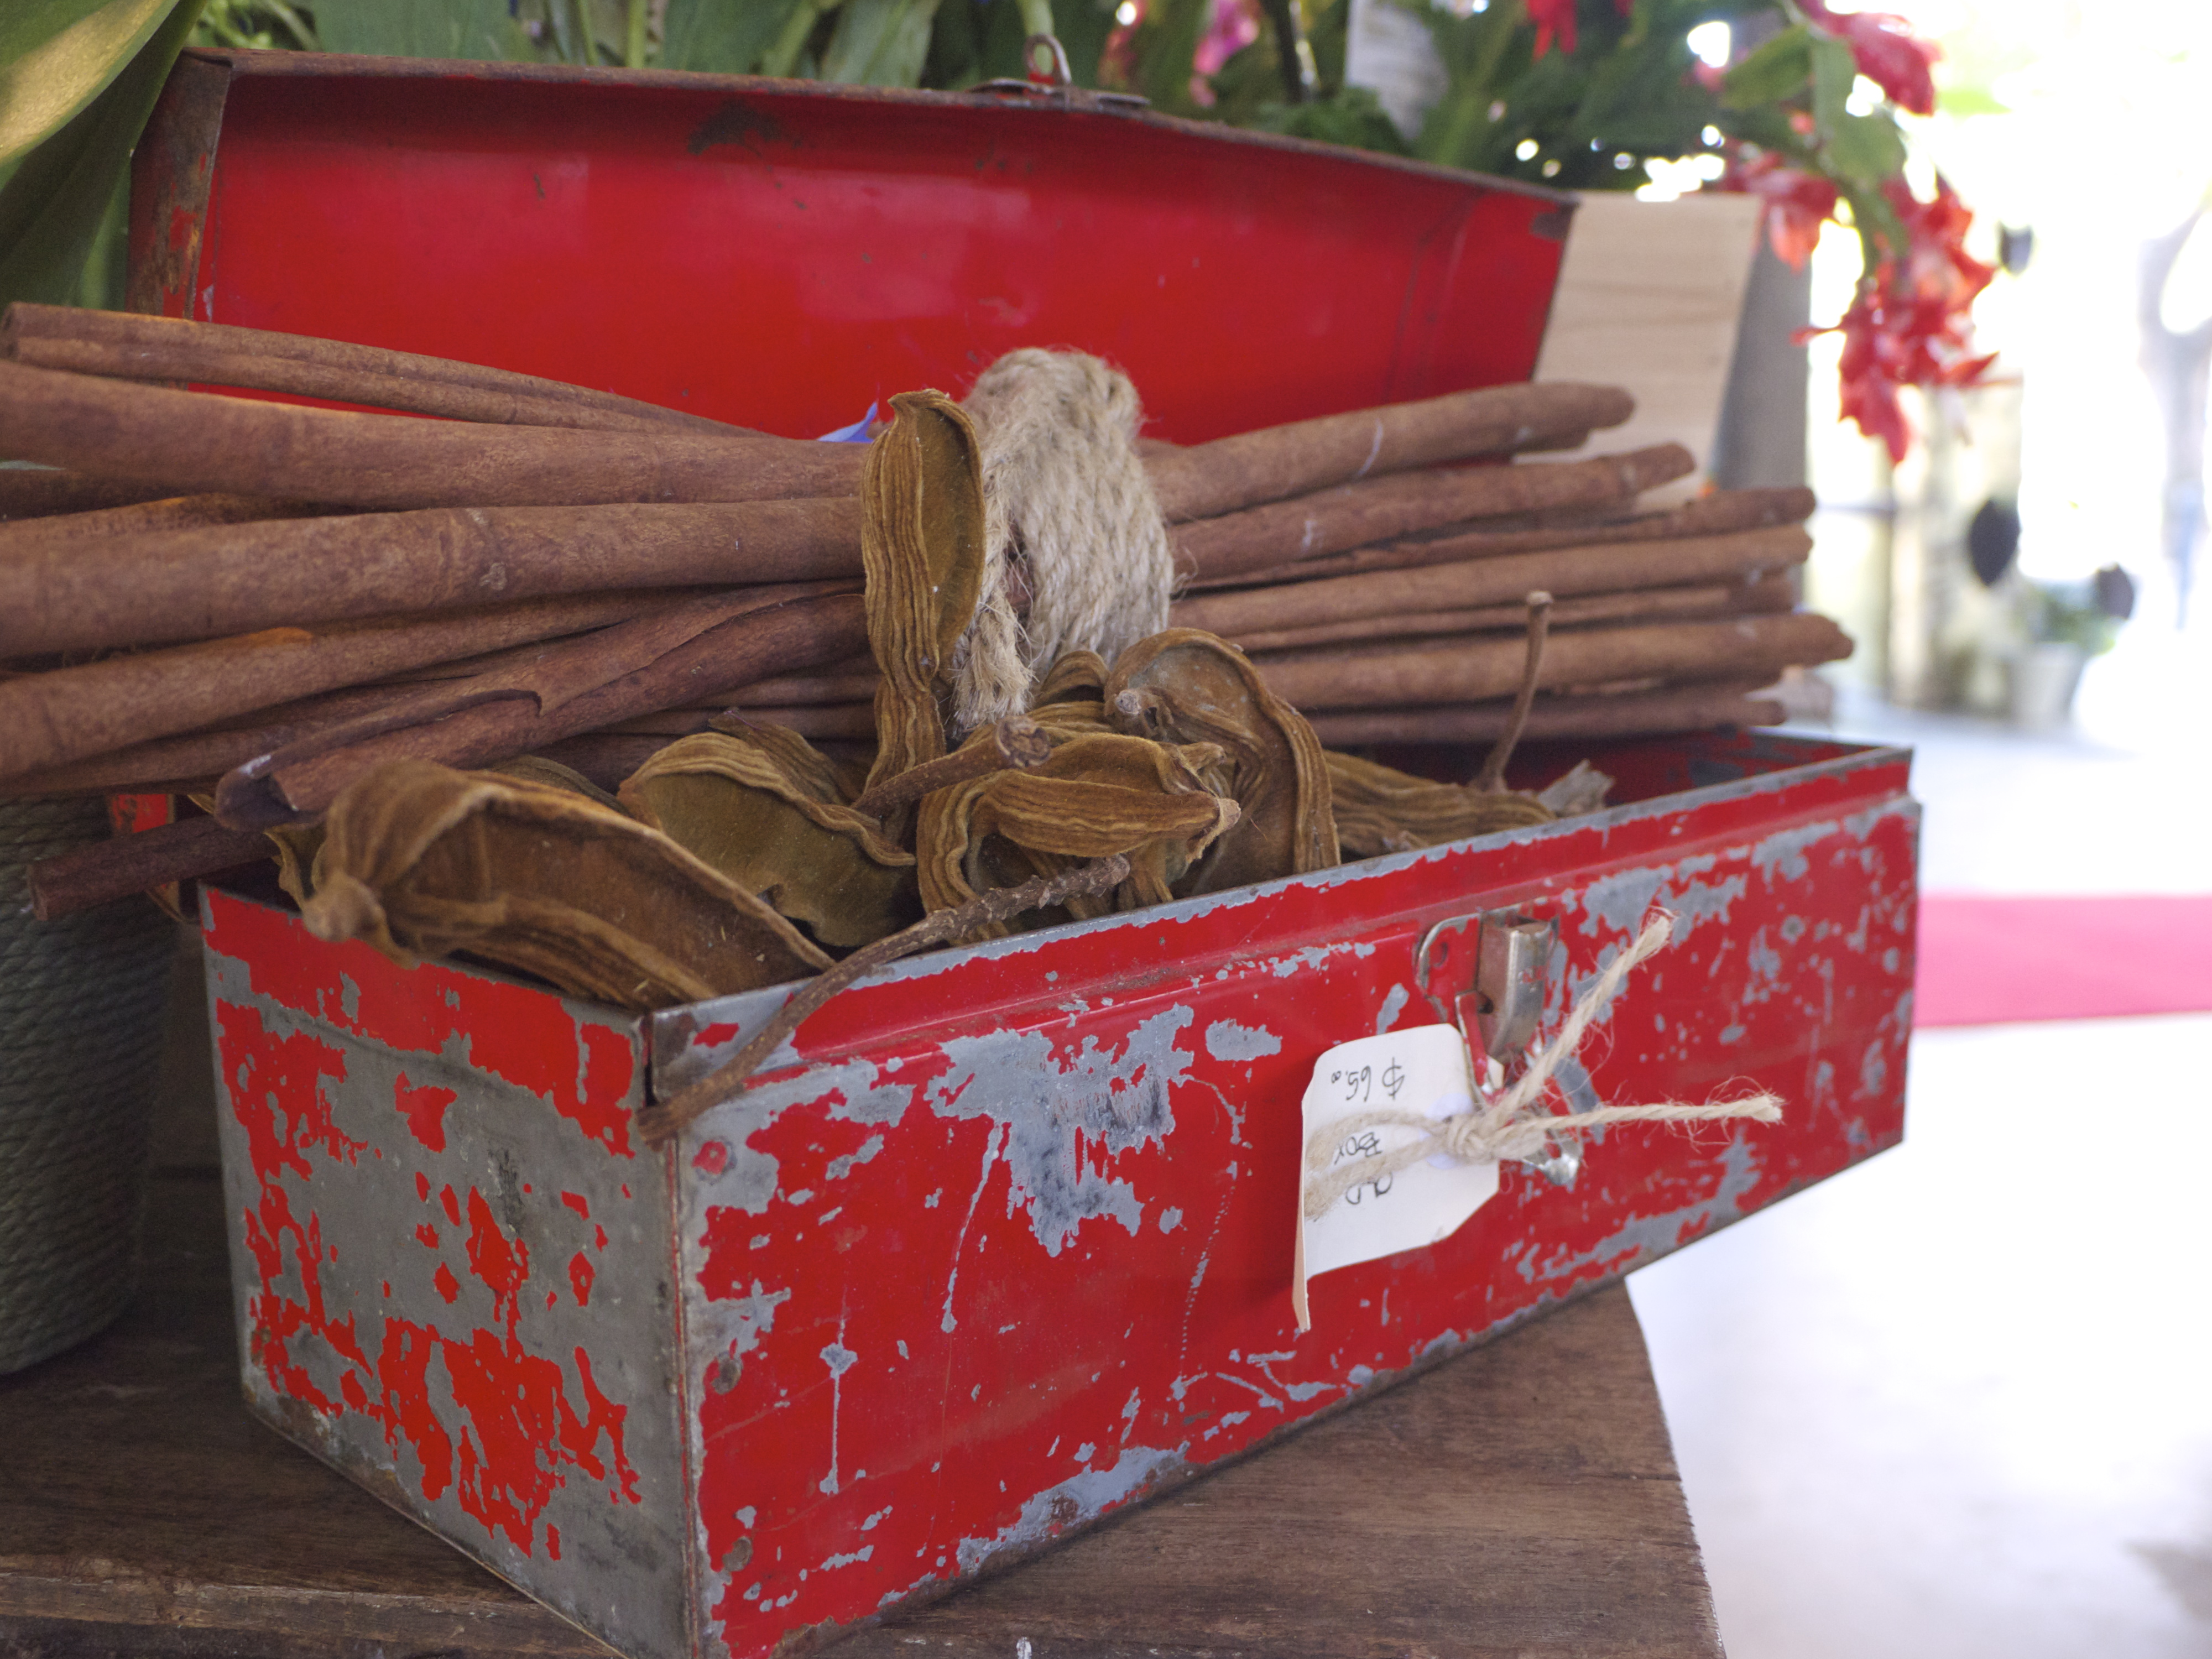 Industrial Red Tool Box - Garlands Florist, Surry Hills